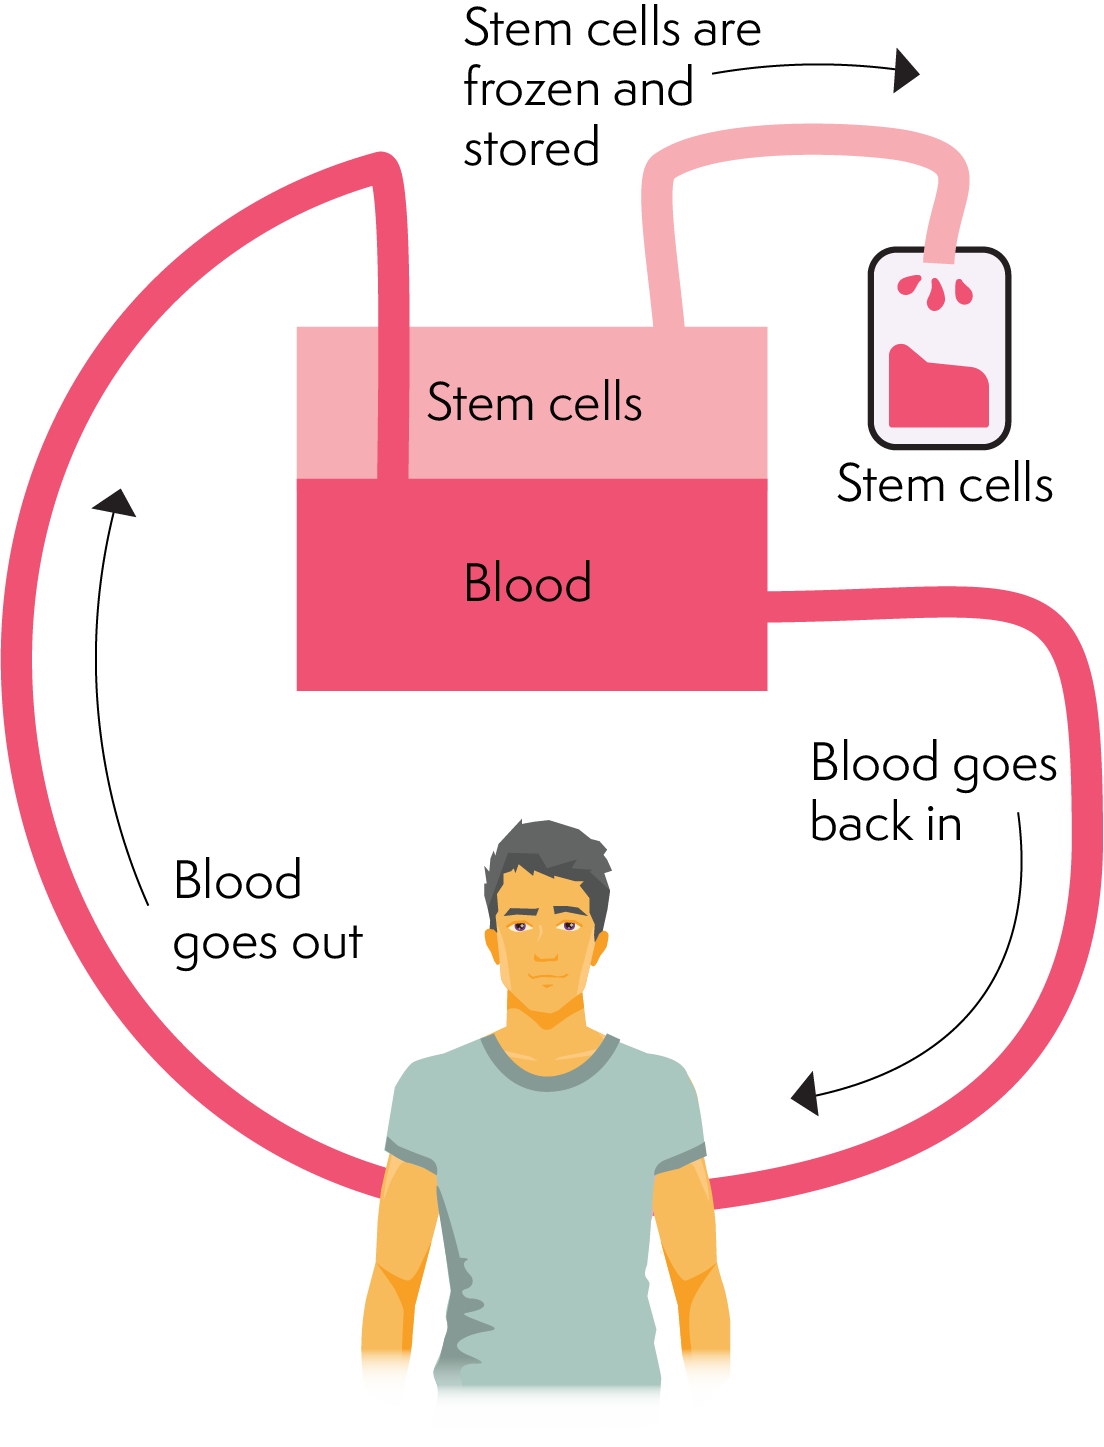 Diagram showing blood coming out of the body, having the stem cells removed and frozen, and the remainder of the blood going back into the body.